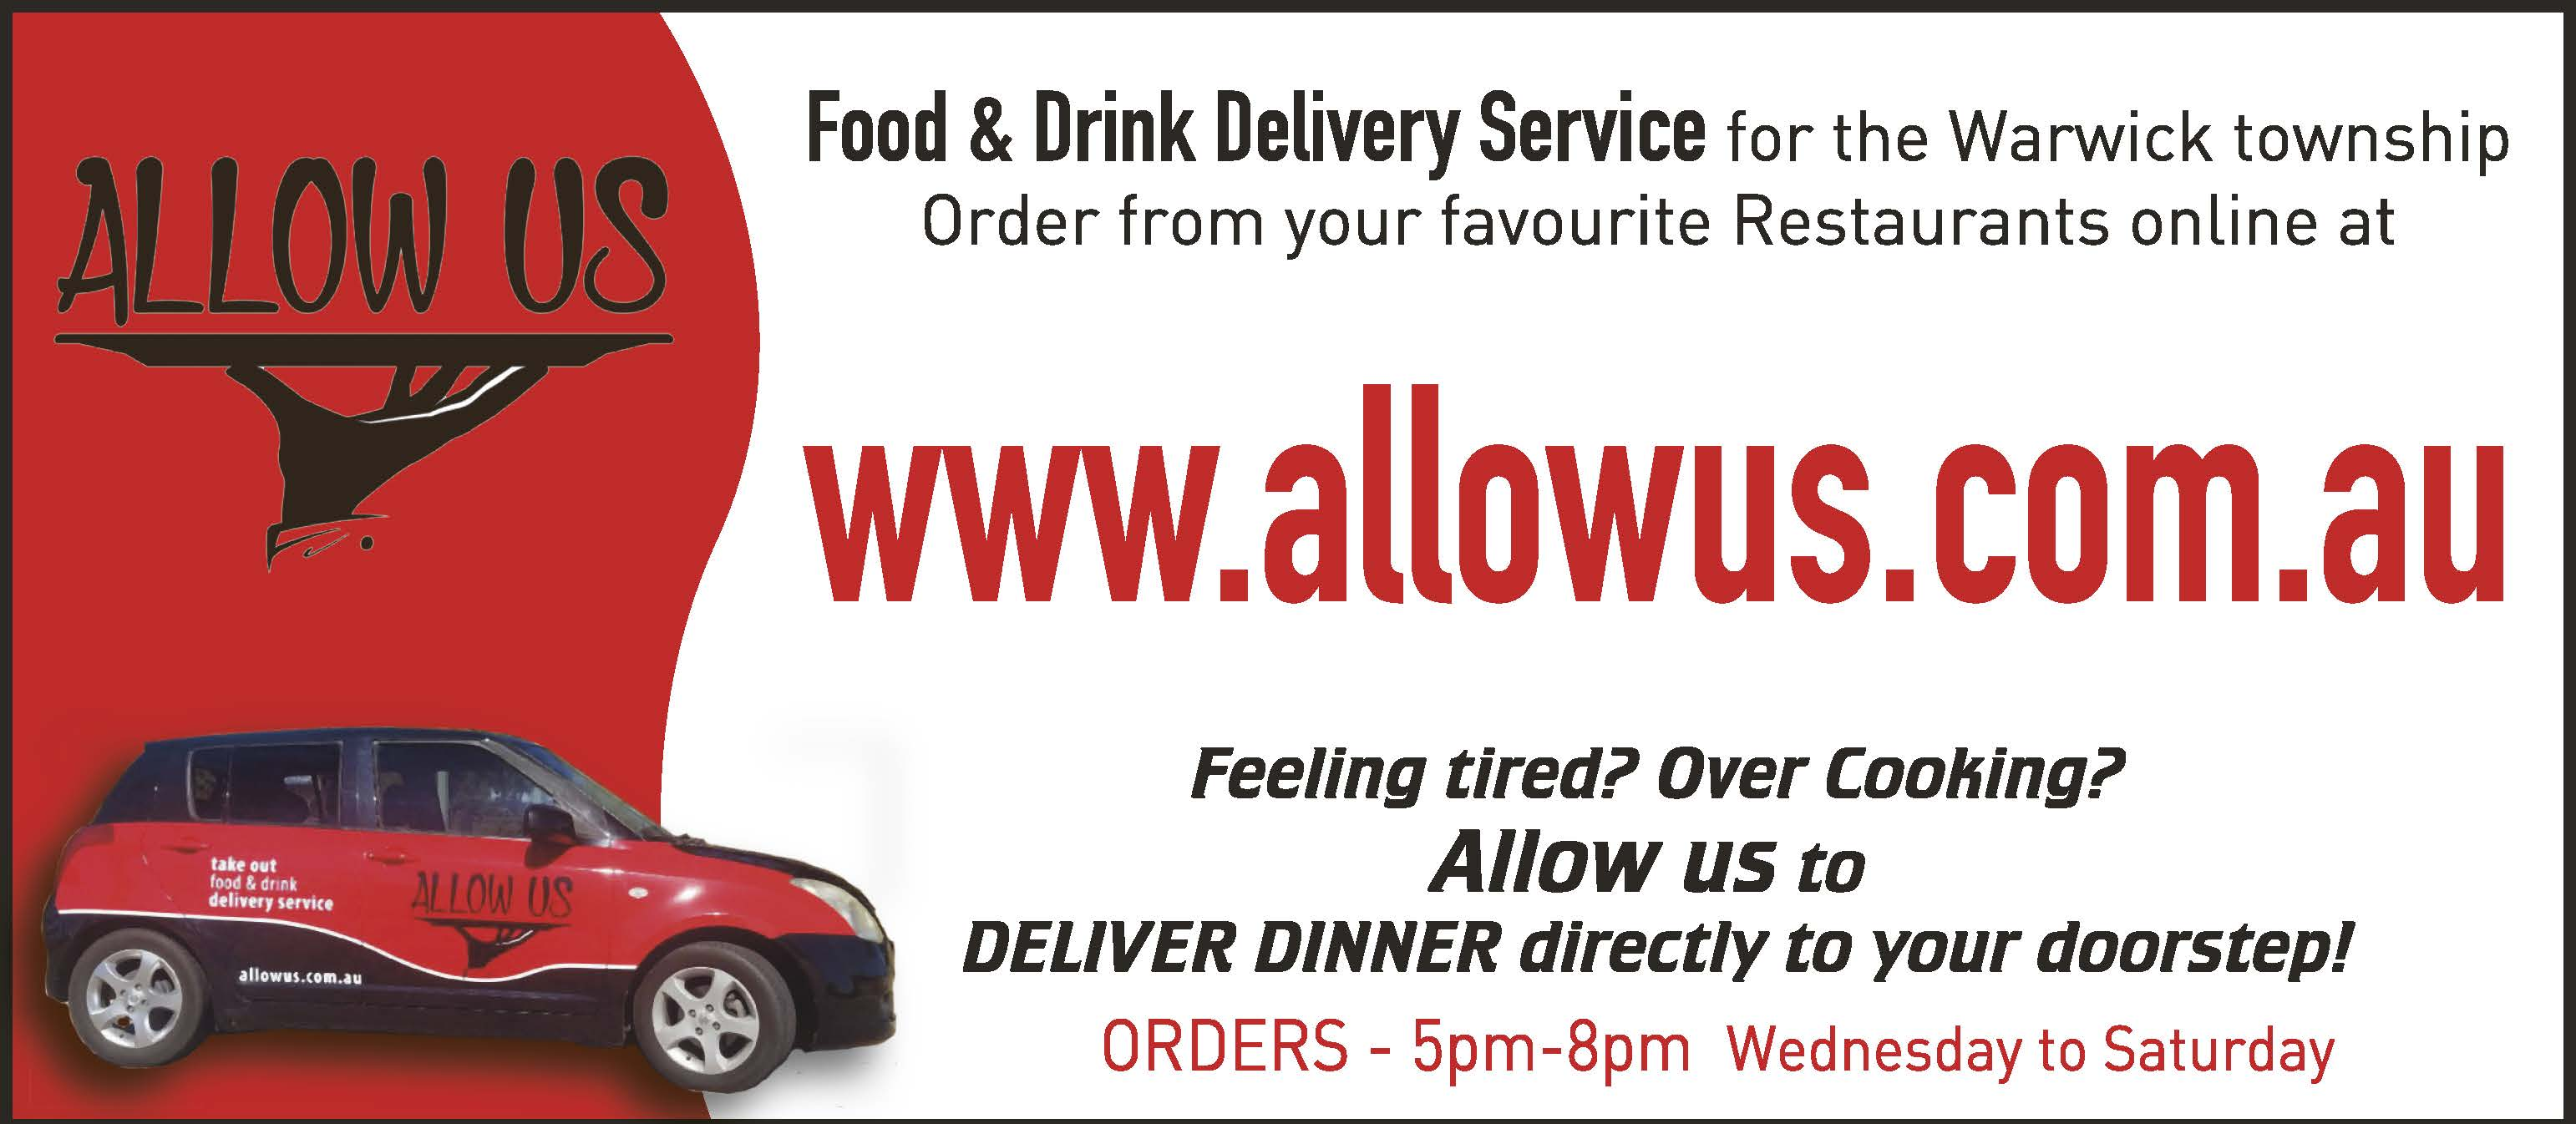 Allow Us | Food Delivery Services in Warwick | PBezy Pocket Books local directories - image web-Allow-Us-WD2.jpg1